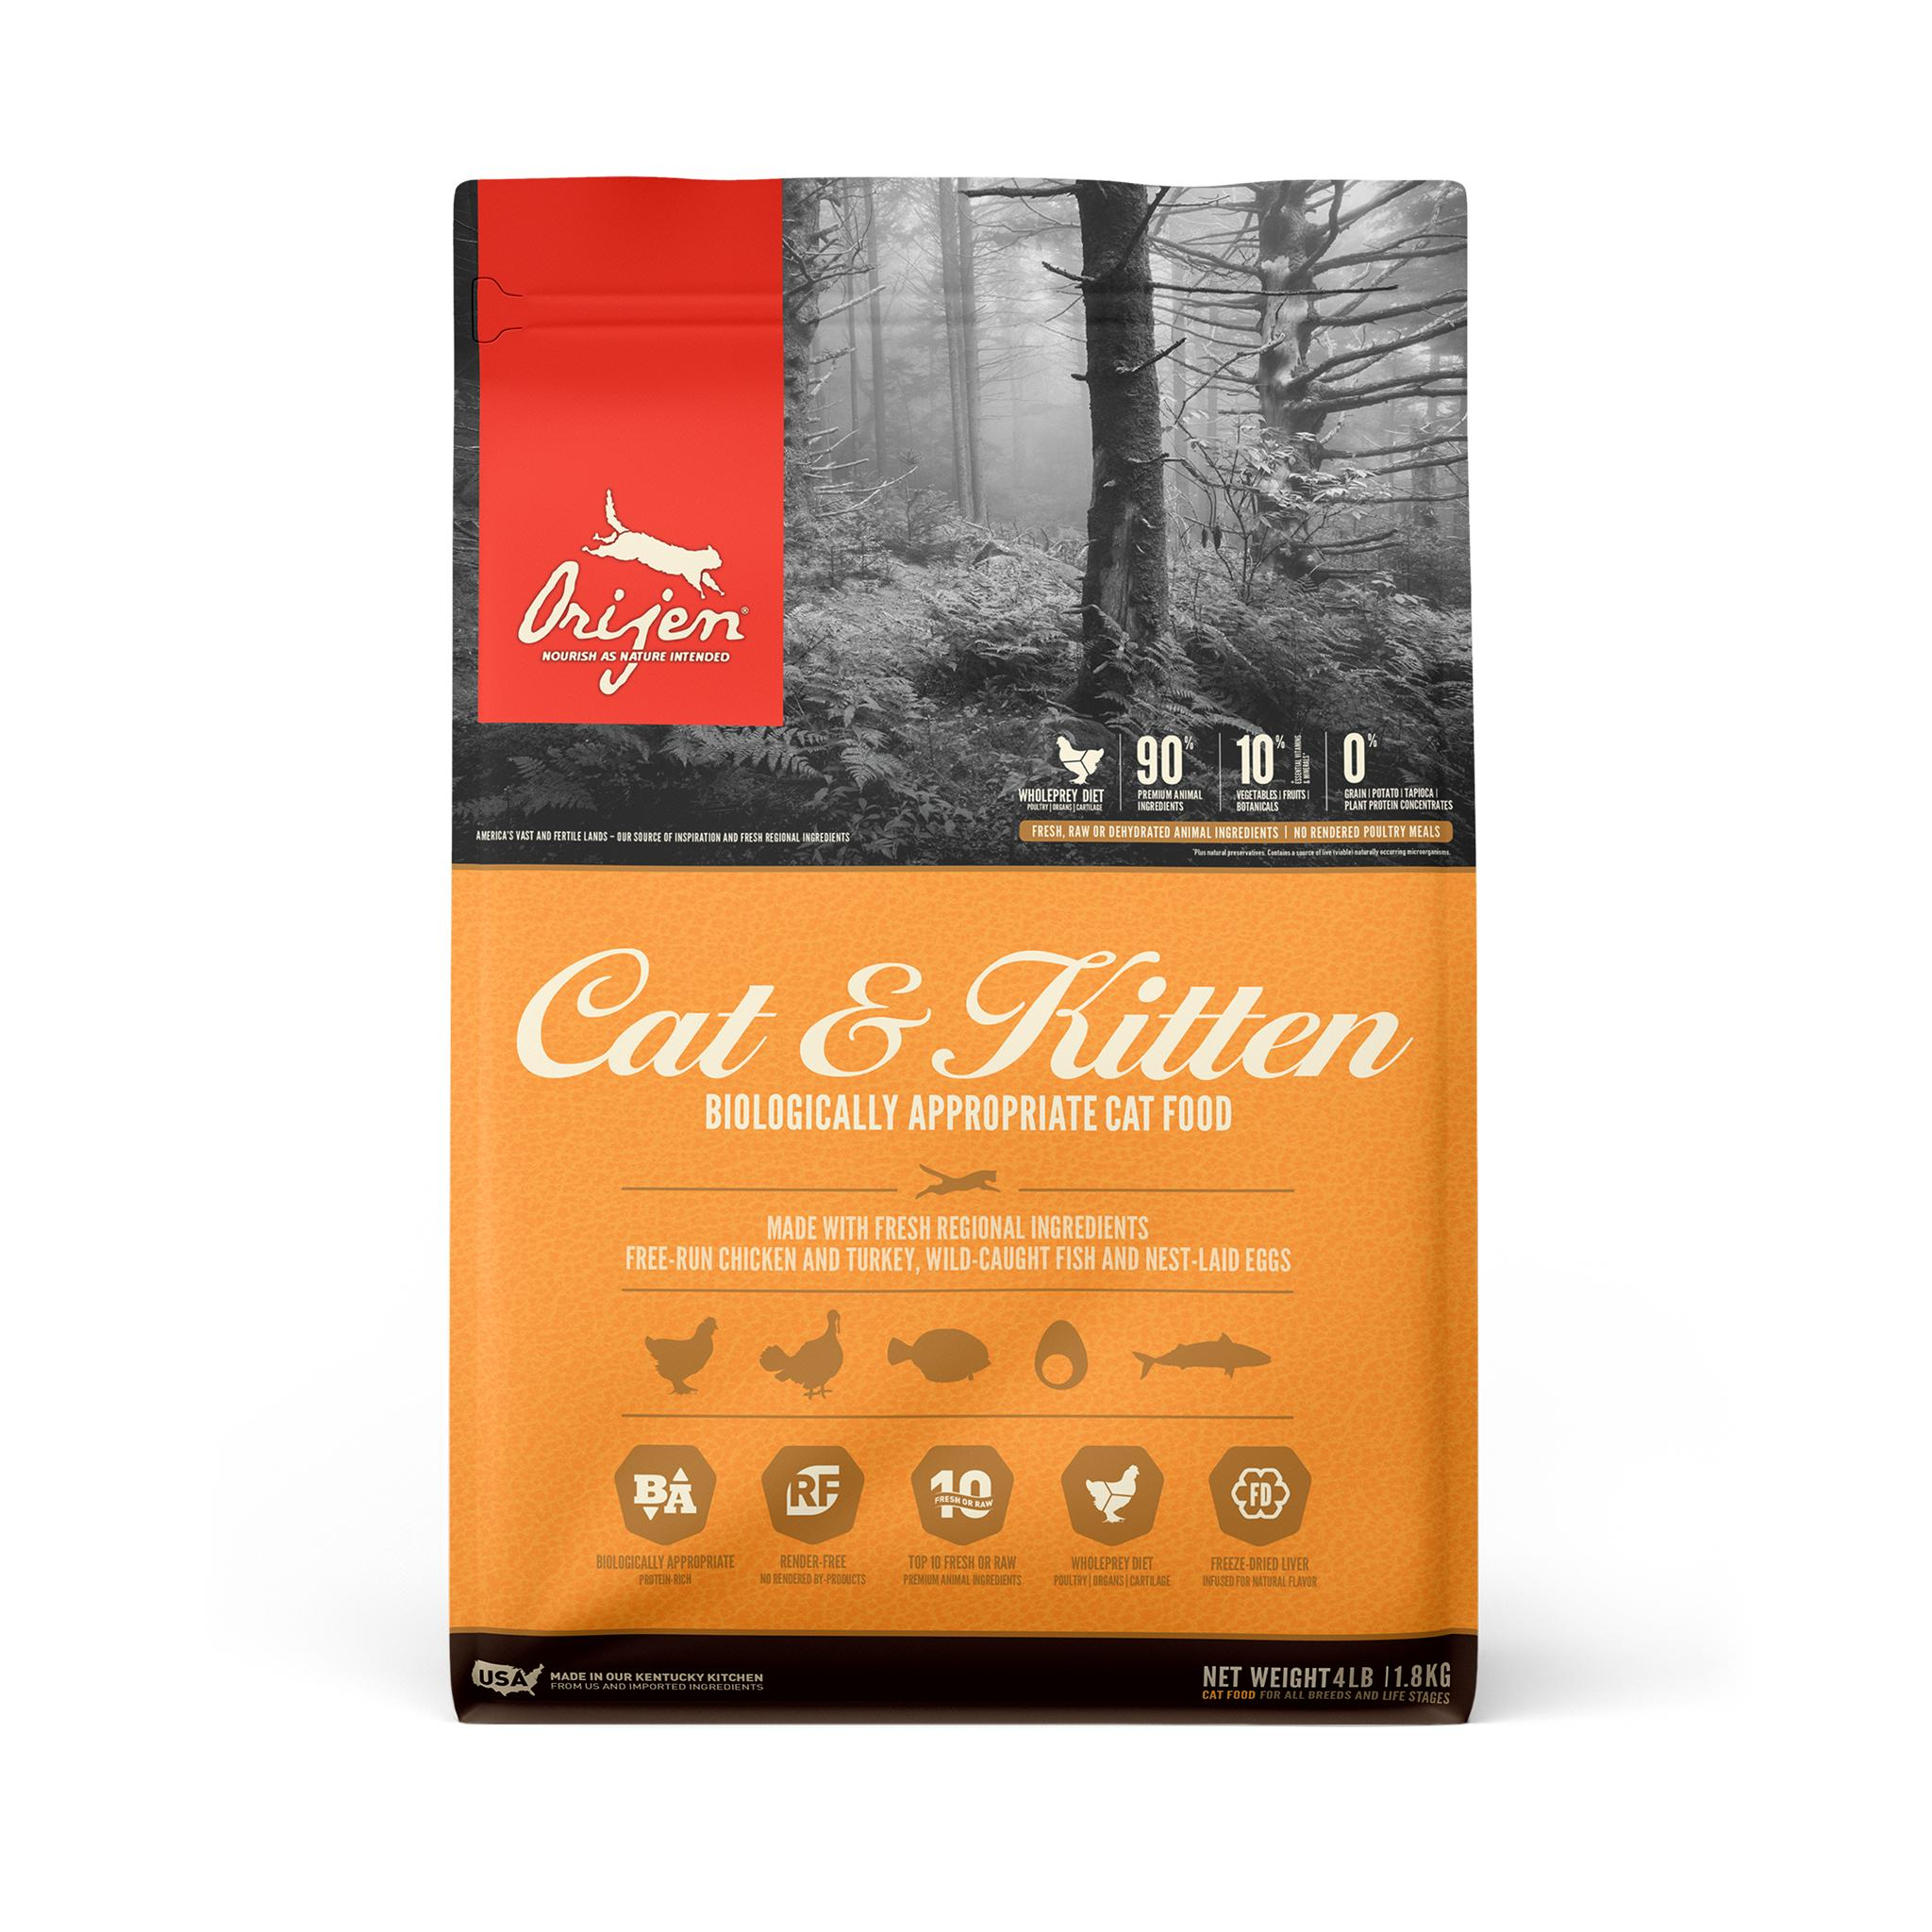 ORIJEN Cat & Kitten Dry Cat Food, 4-lb